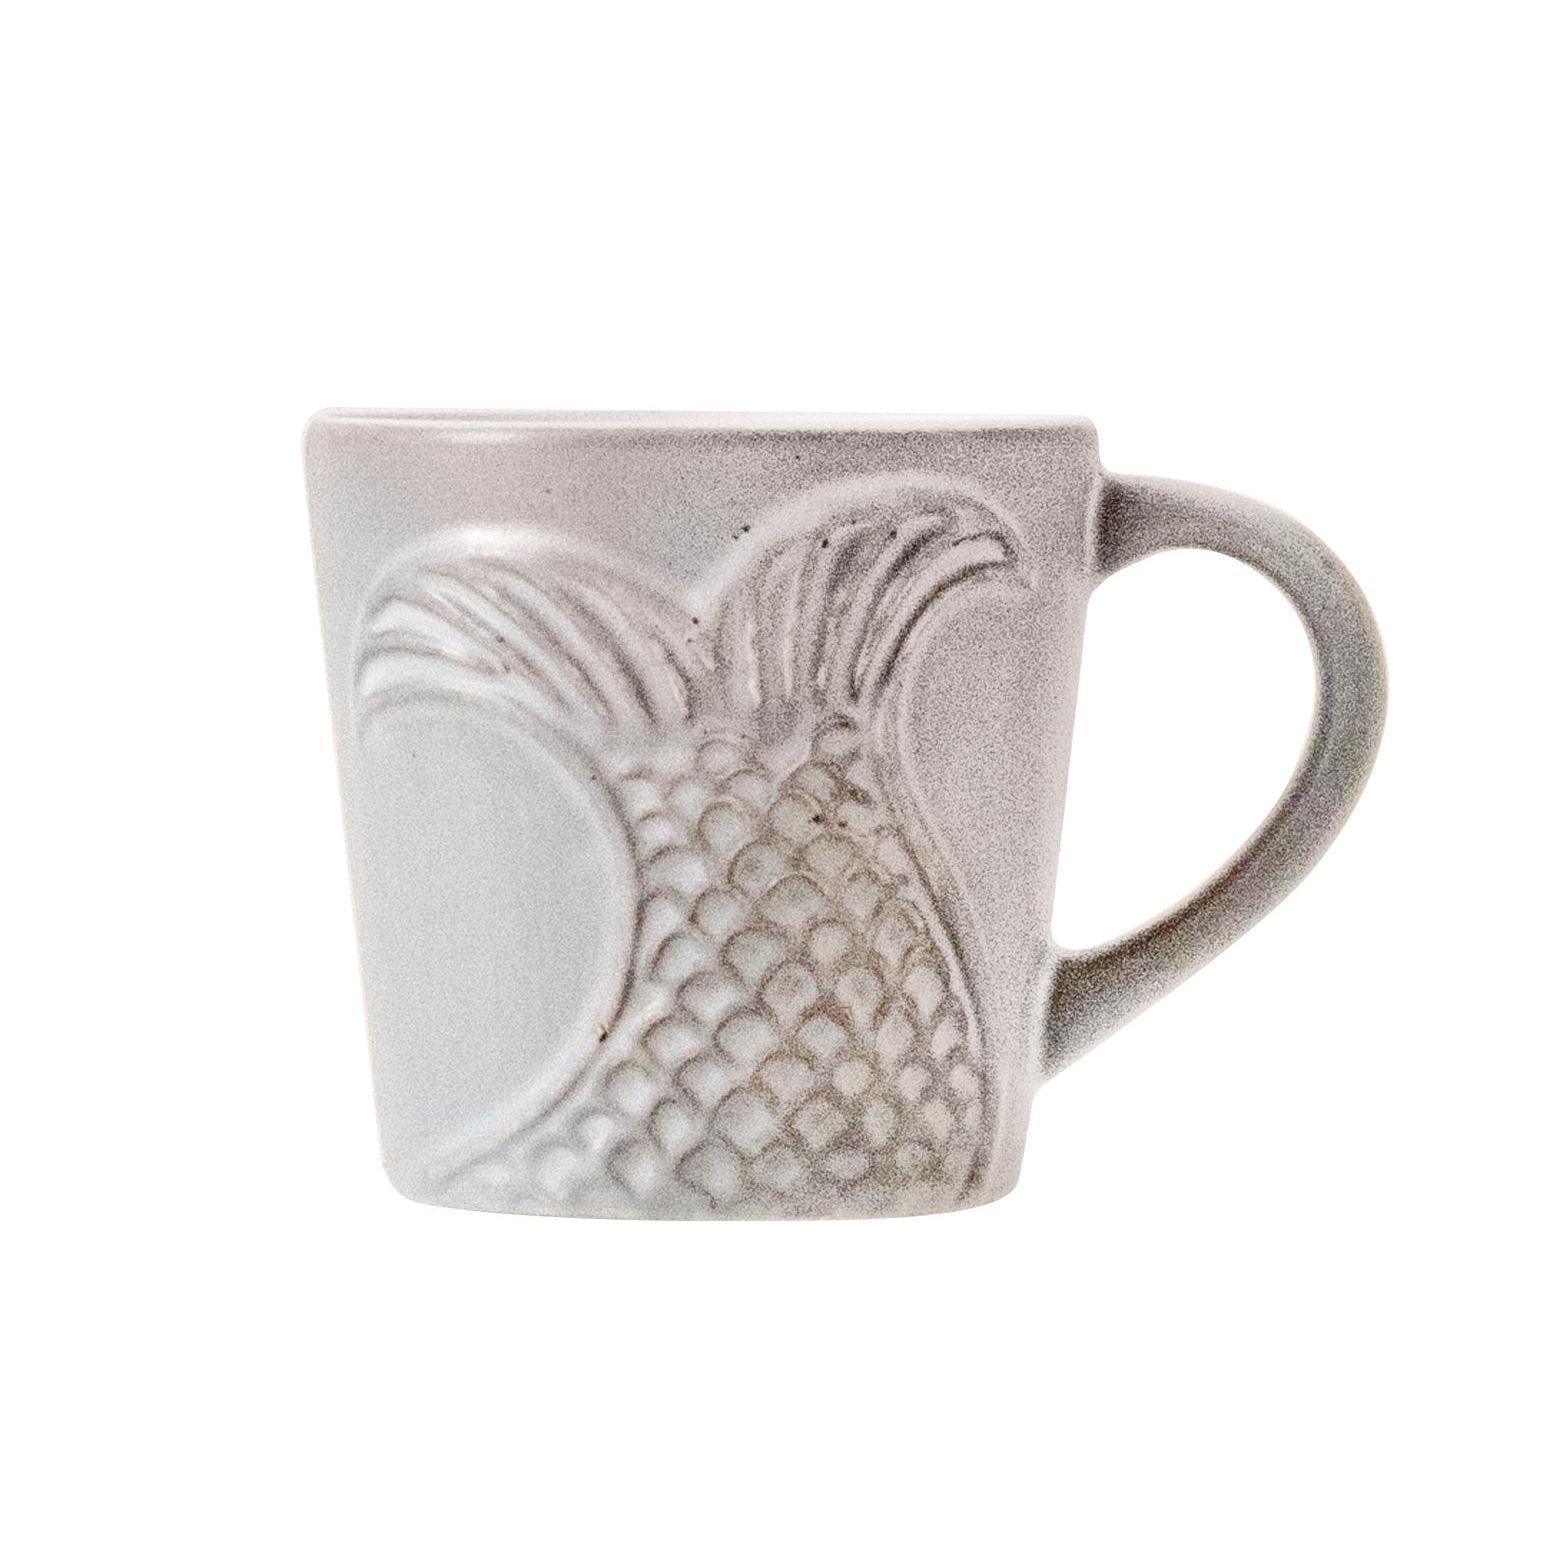 mugs-sirenes-starbucks-8